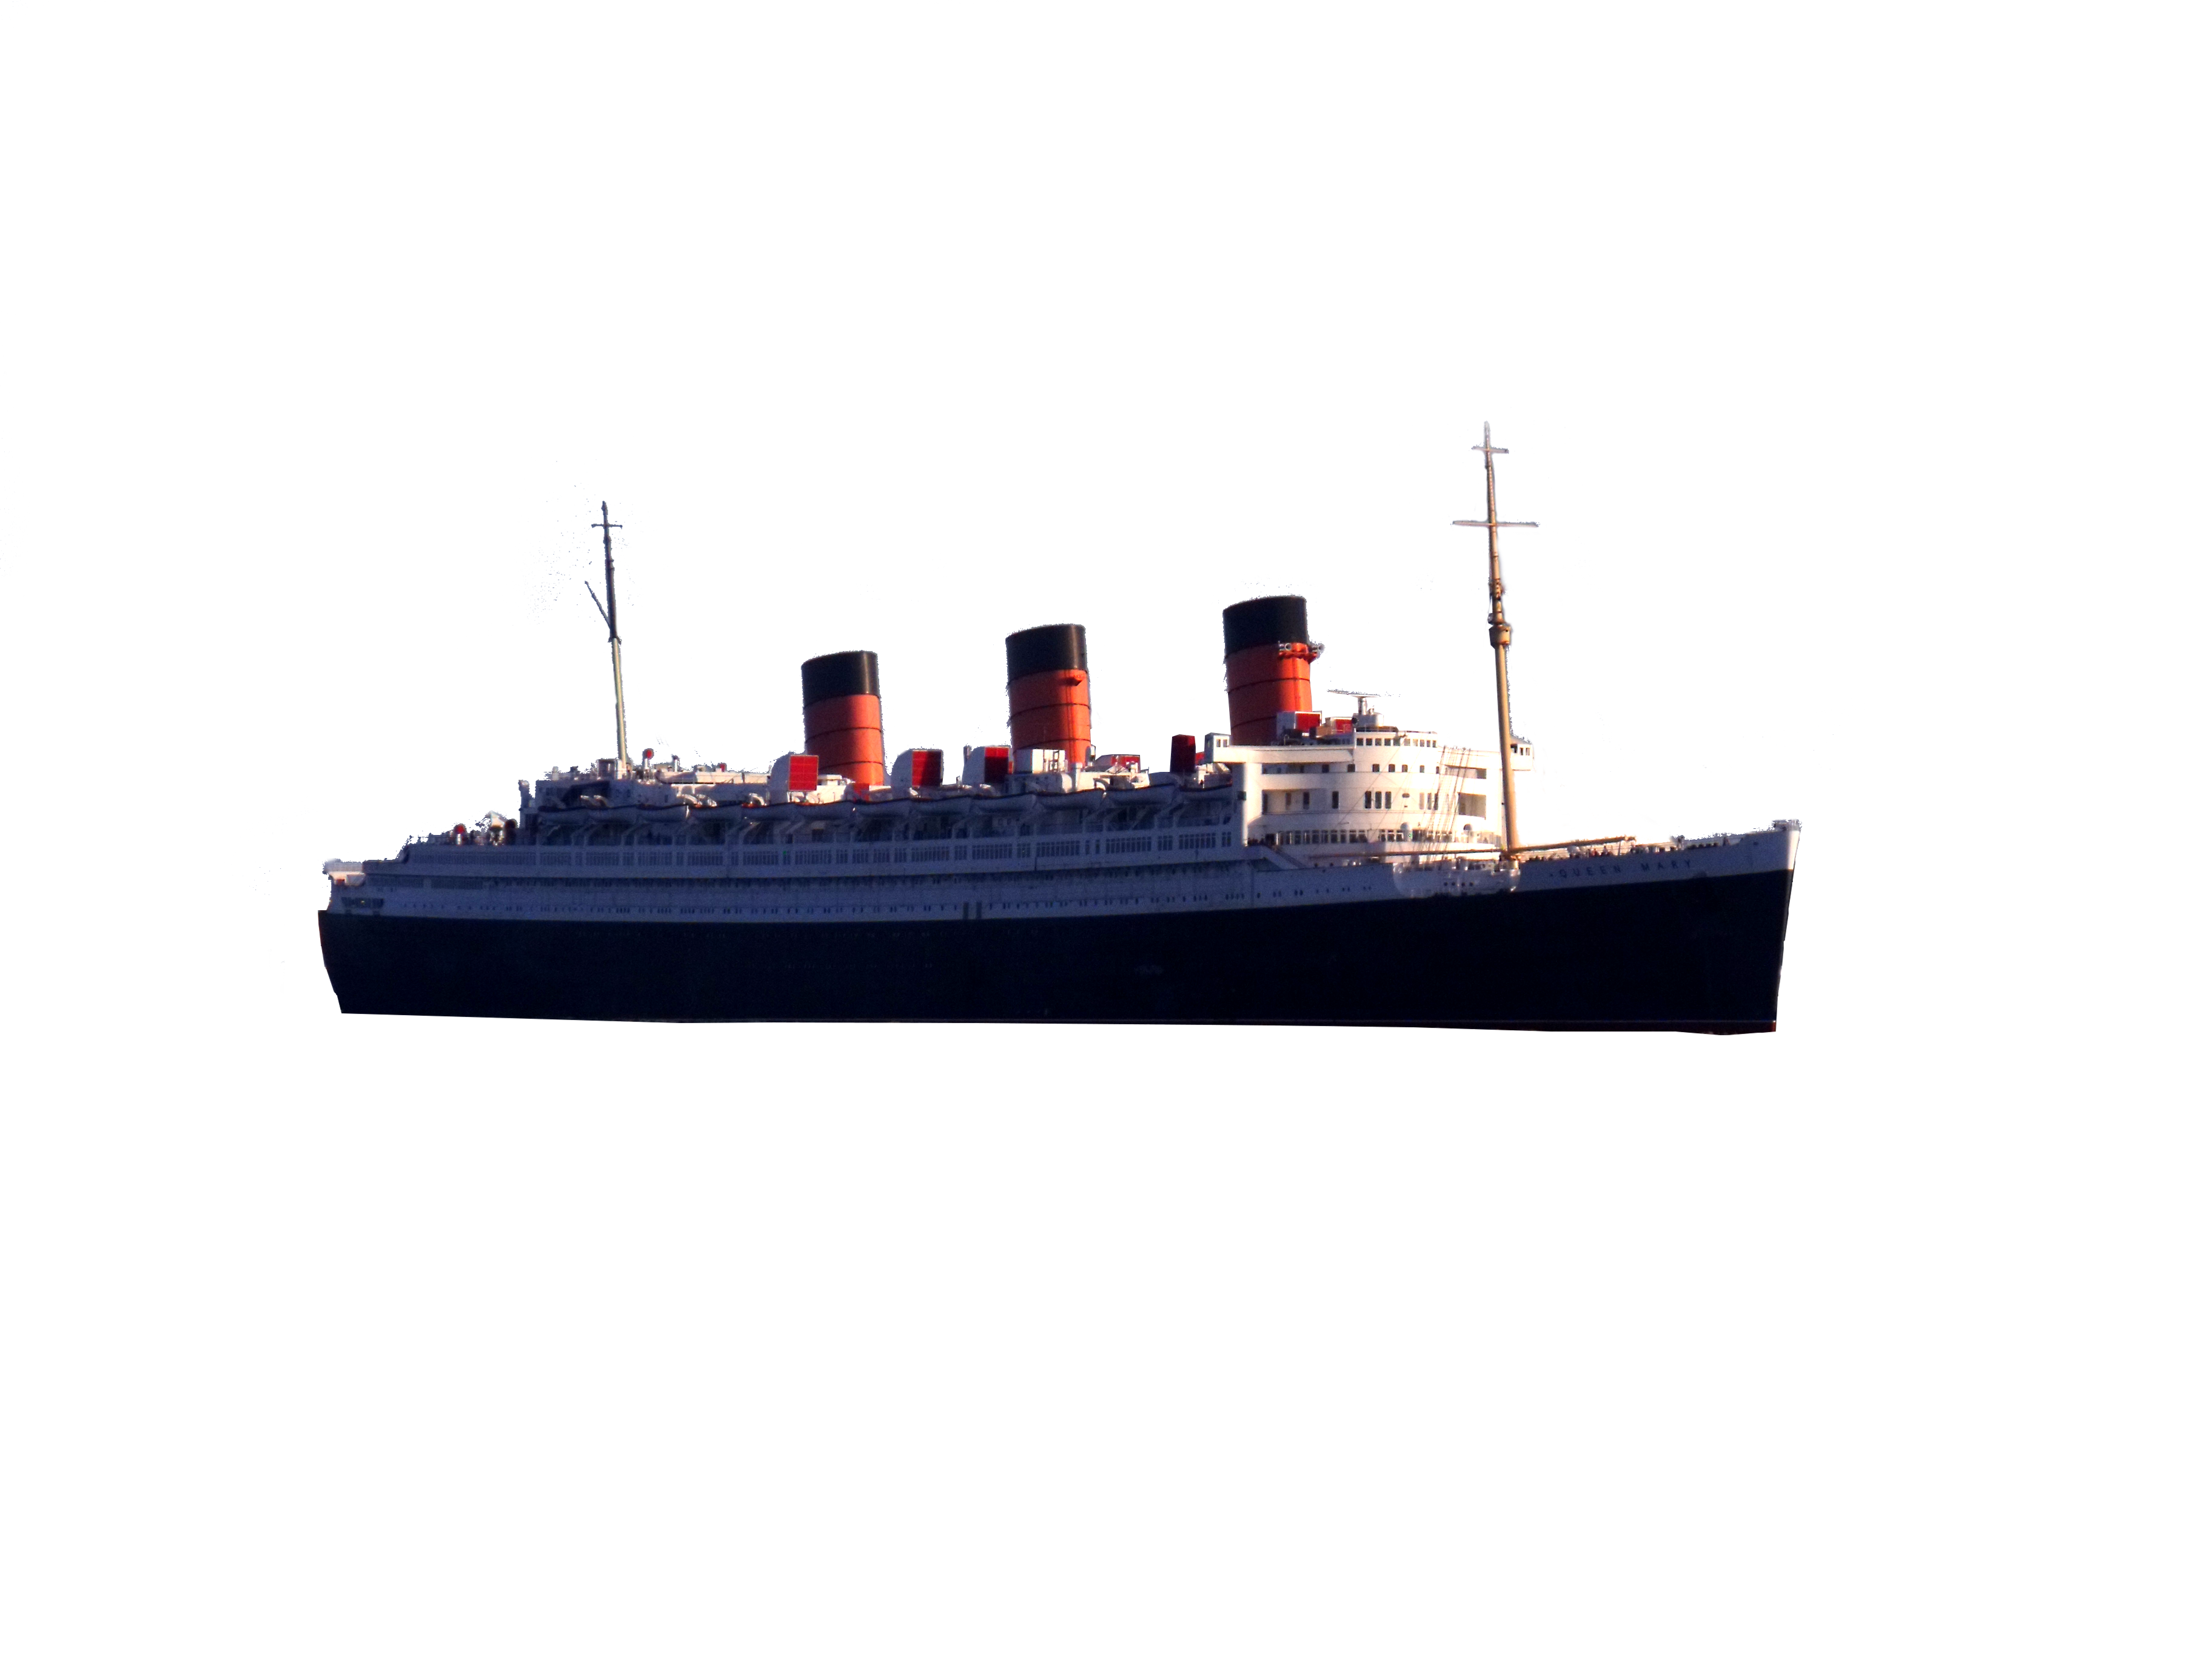 RMS Queen Mary by RMS.